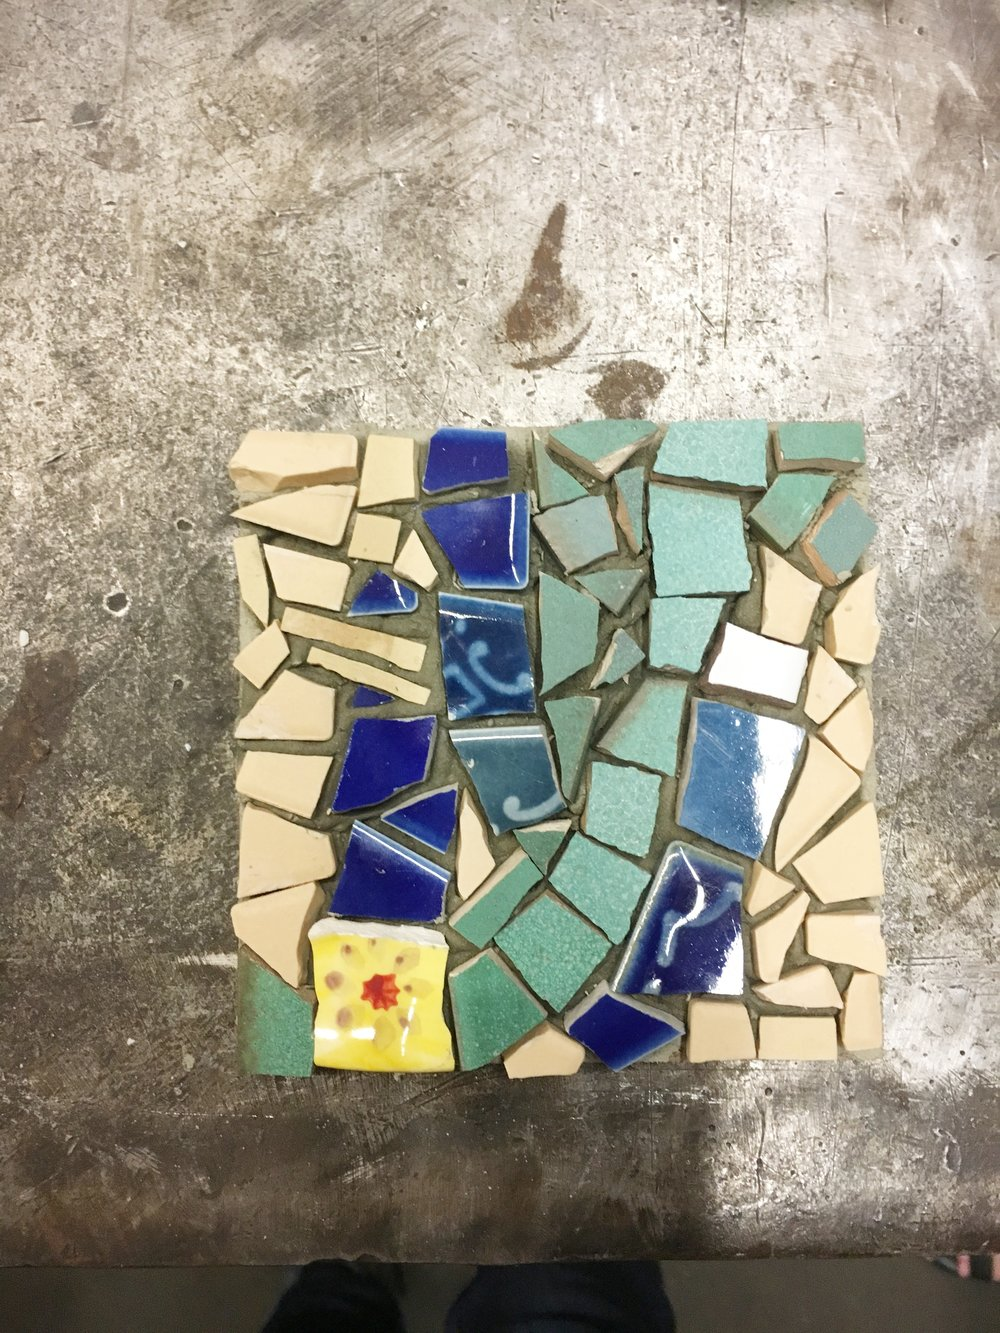 AIGA mosaic workshop student work PH2018 (10).JPG